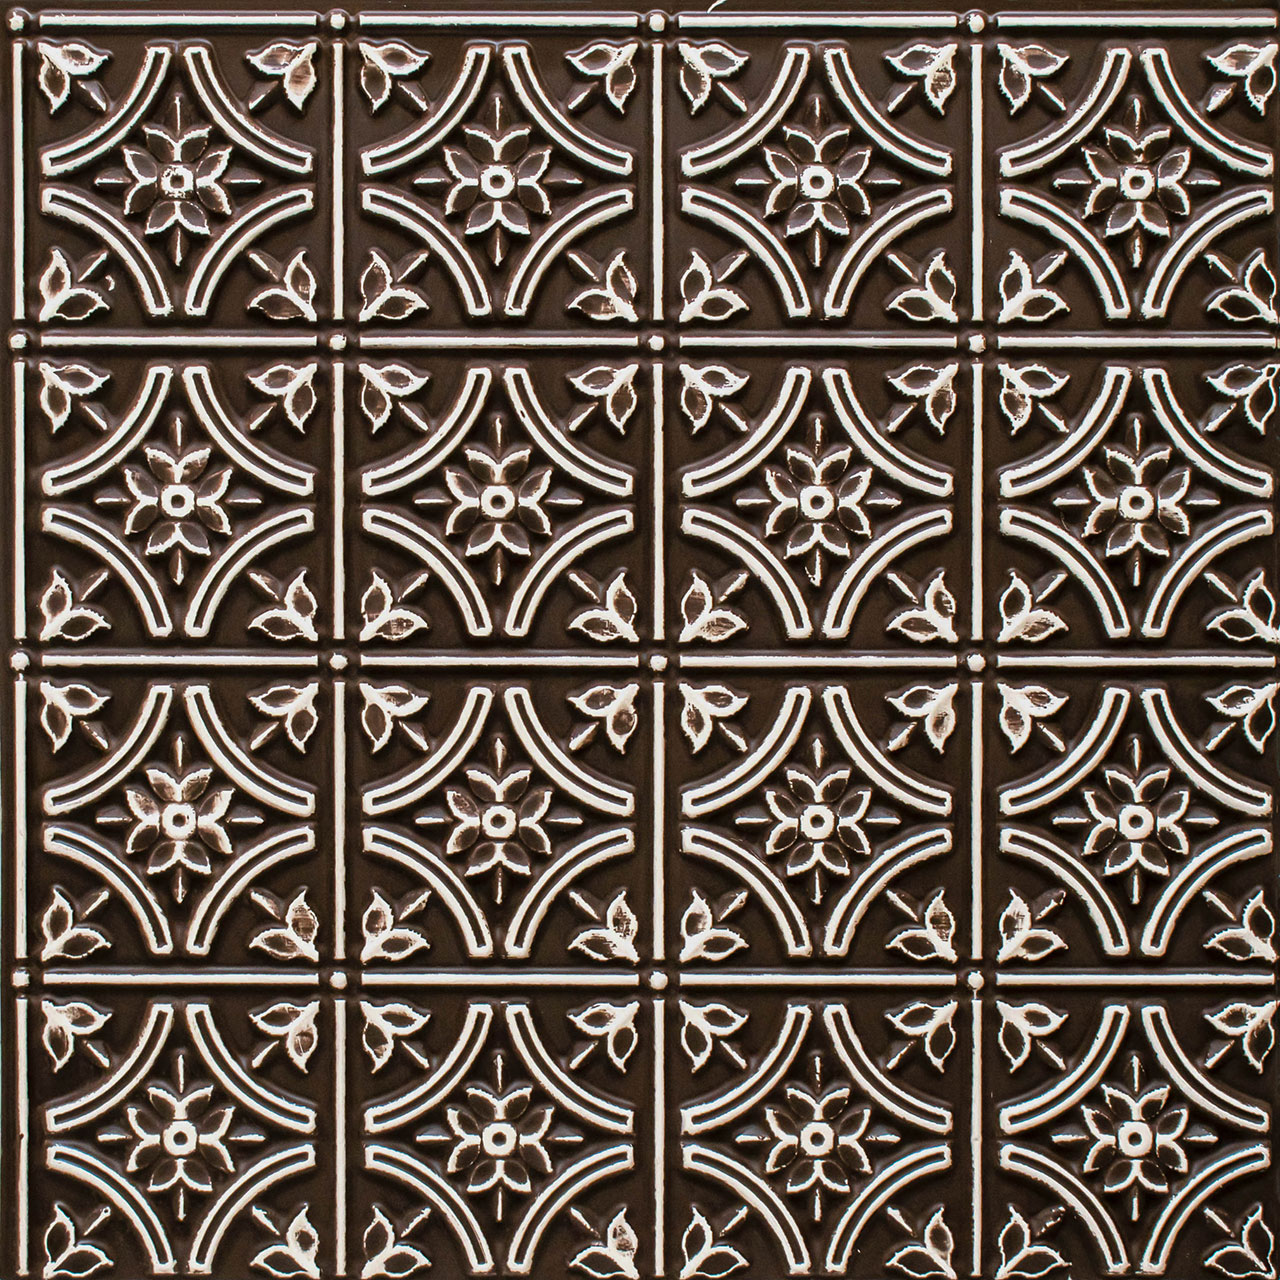 Gothic Reims - Faux Tin Ceiling Tile - 24 in x 24 in - #150